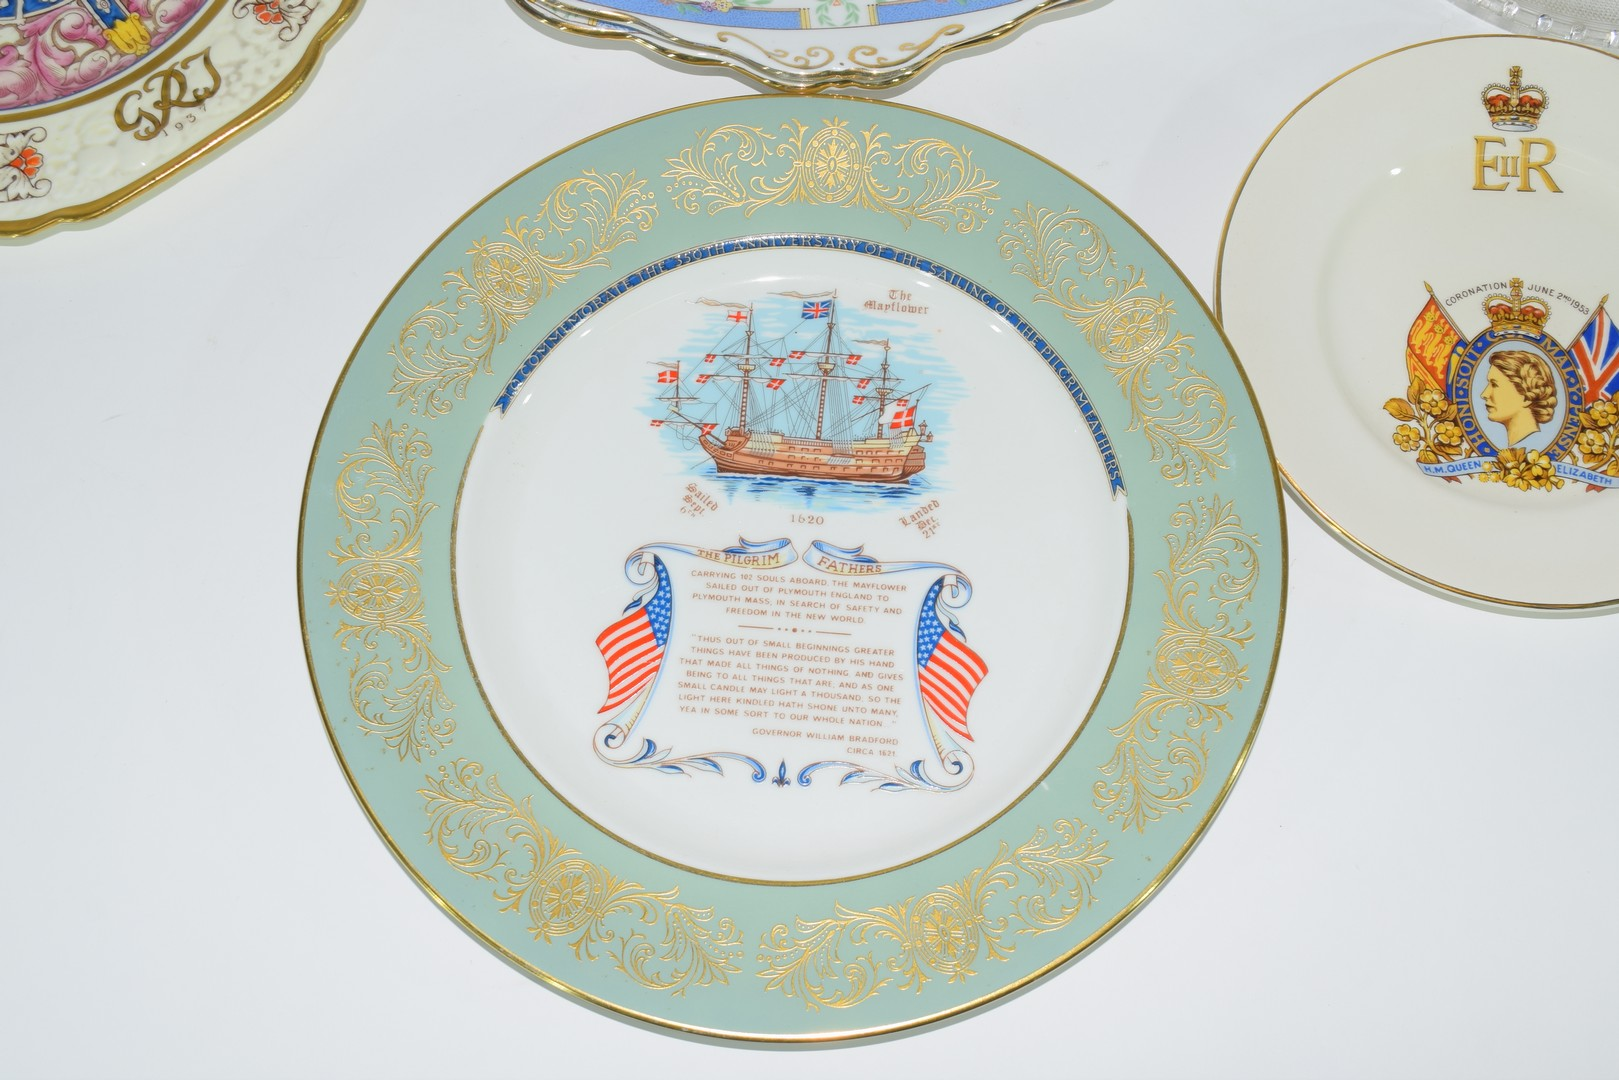 Group of decorative plates including a Paragon commemorative plate - Image 2 of 7